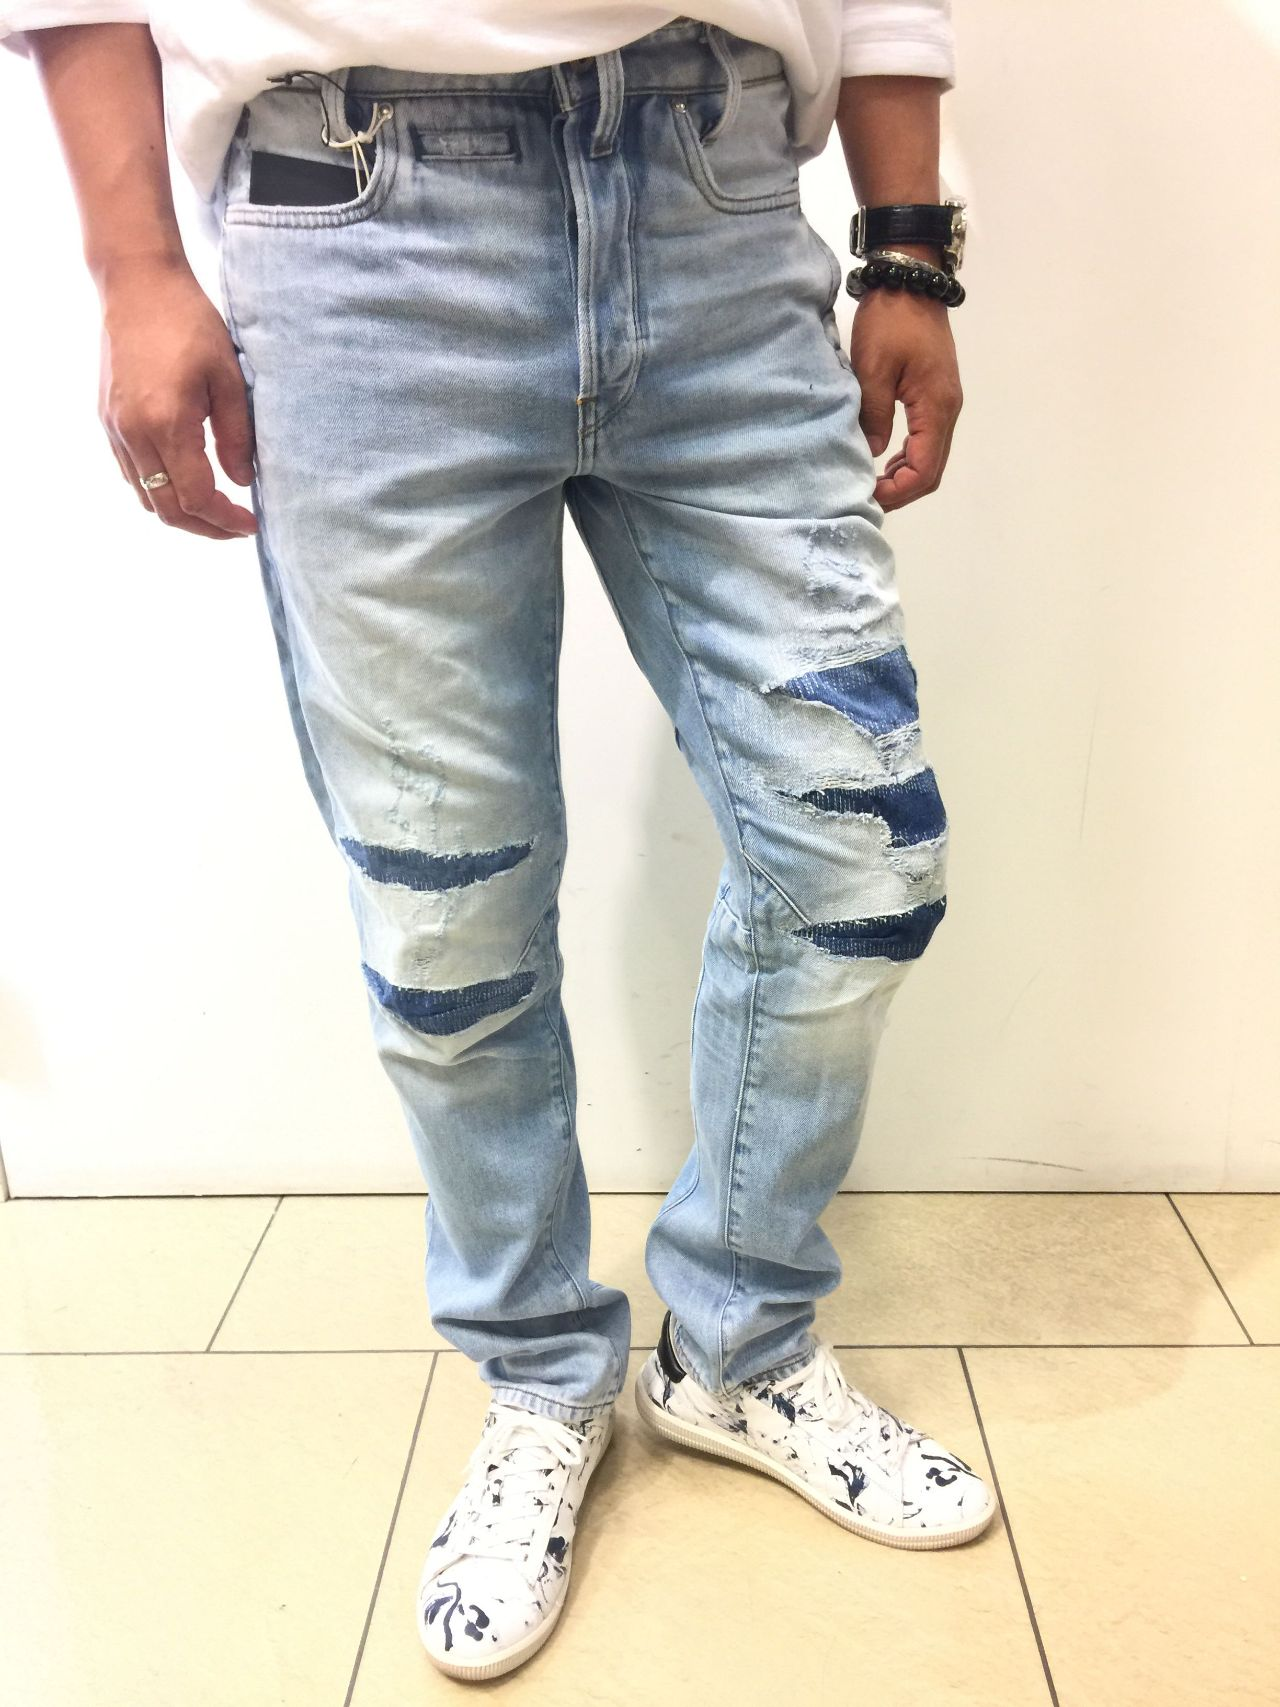 35981ce817f G-star】NEW ARRIVAL No31 | CSMEN /シーズメン 公式ショップブログ